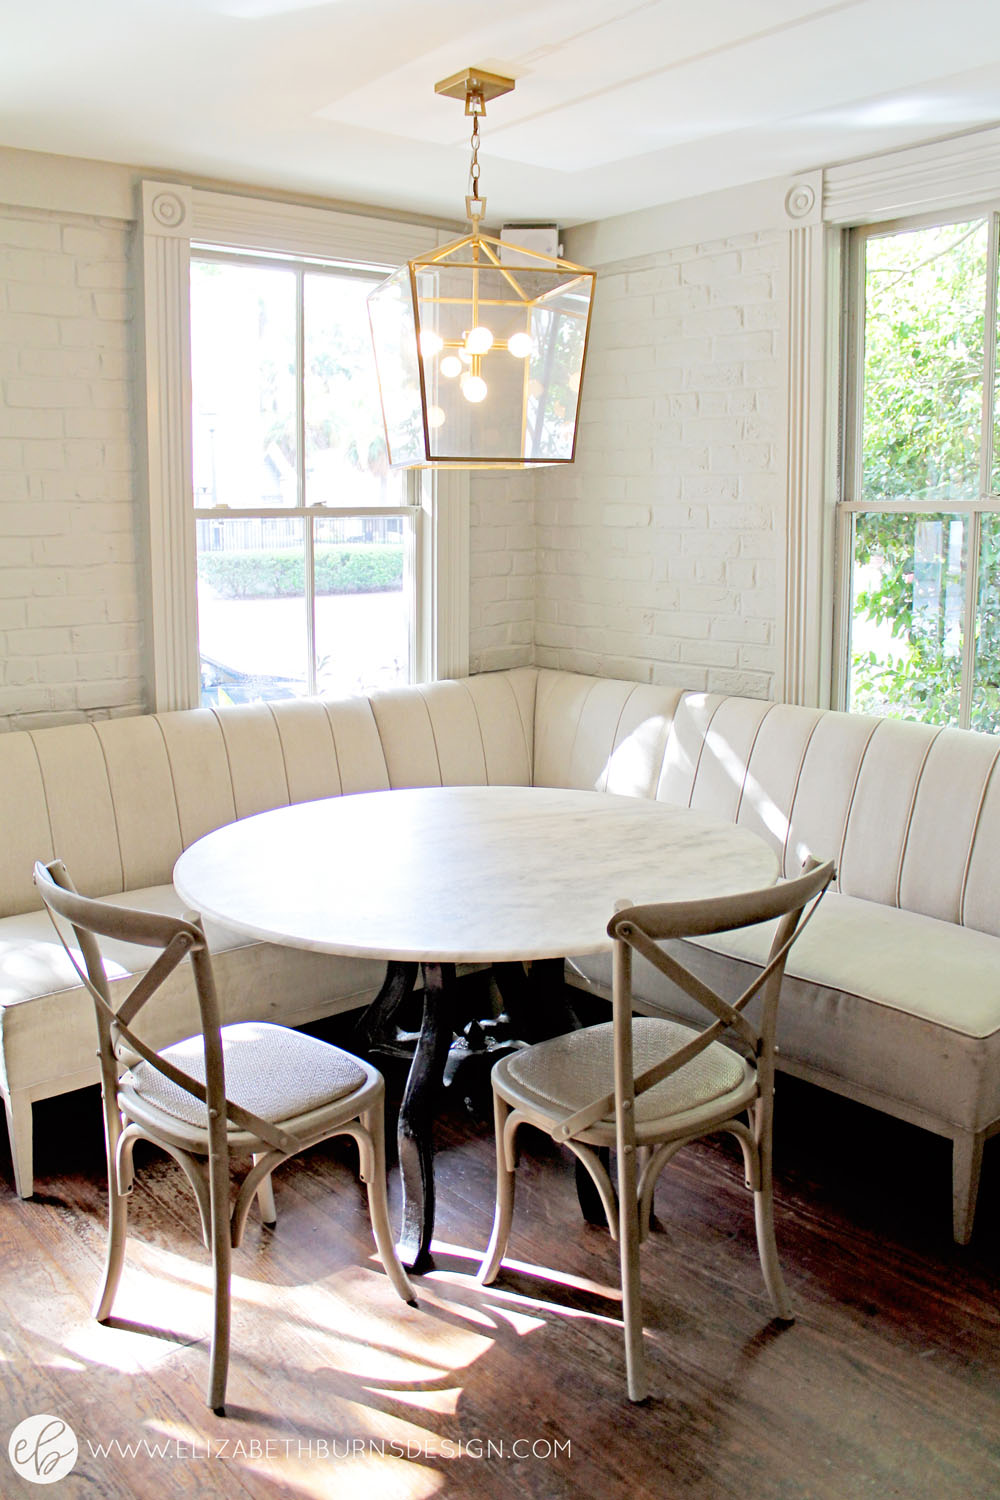 Mirabelleu0027s Is Just The Sweetest (literally!) Little Spot We Found In  Savannah. It Is A Boutique Hotel But Also Has A Darling Cafe In The Main  Level.